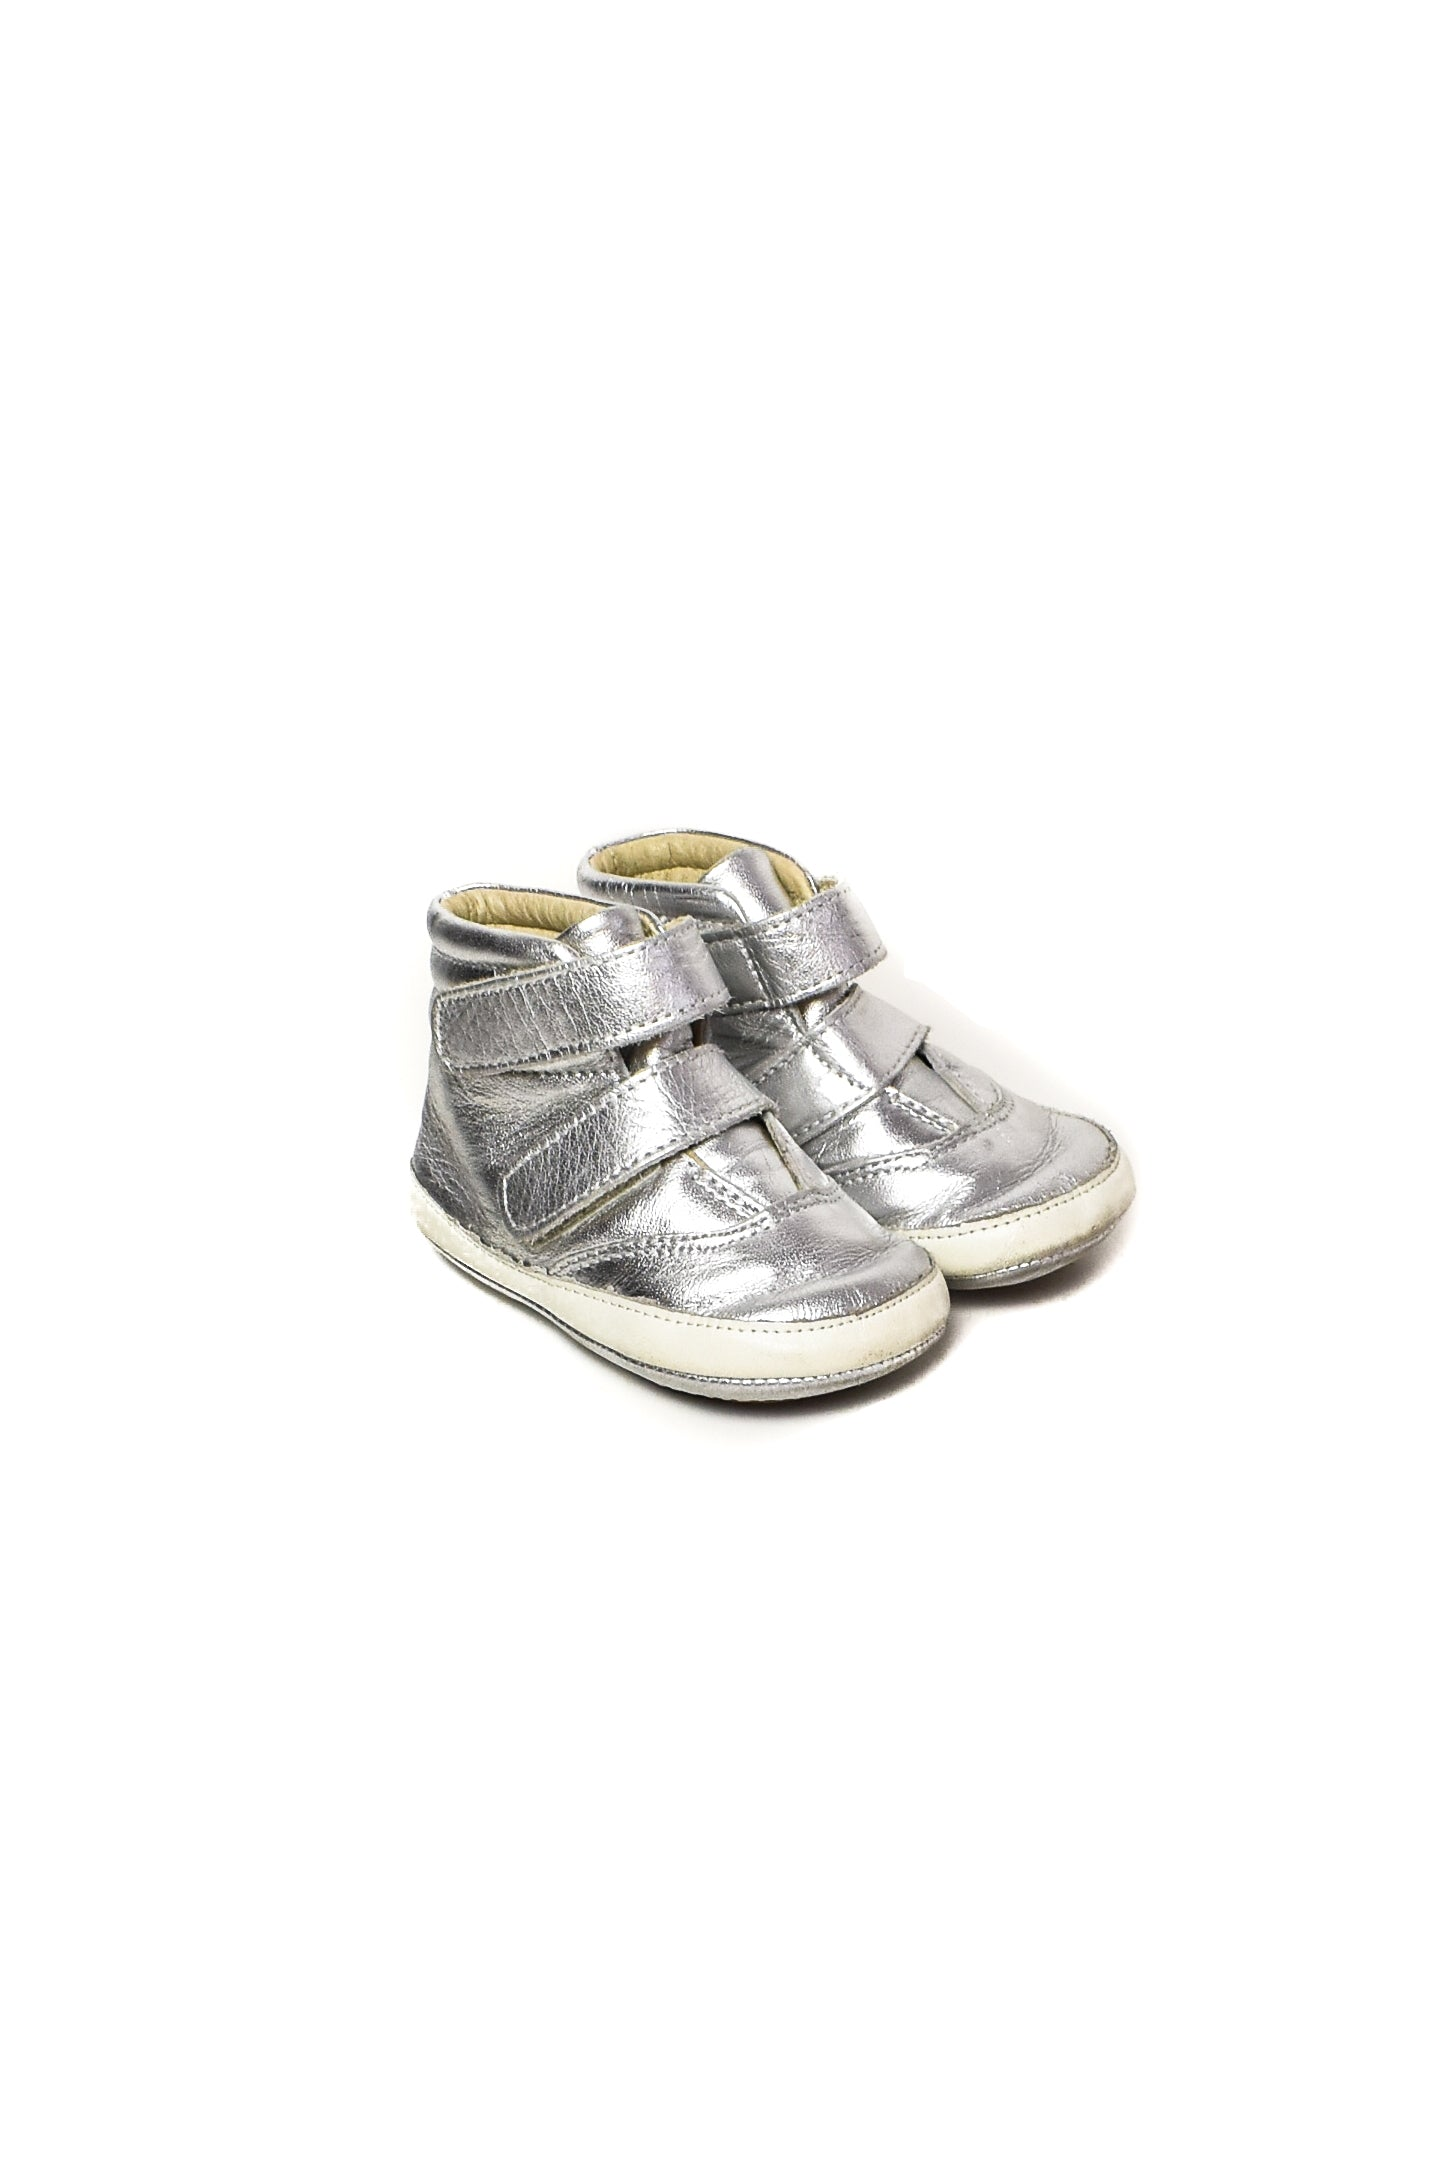 10007997 Old Soles Baby~ Shoes 12-15M (EU 21) at Retykle